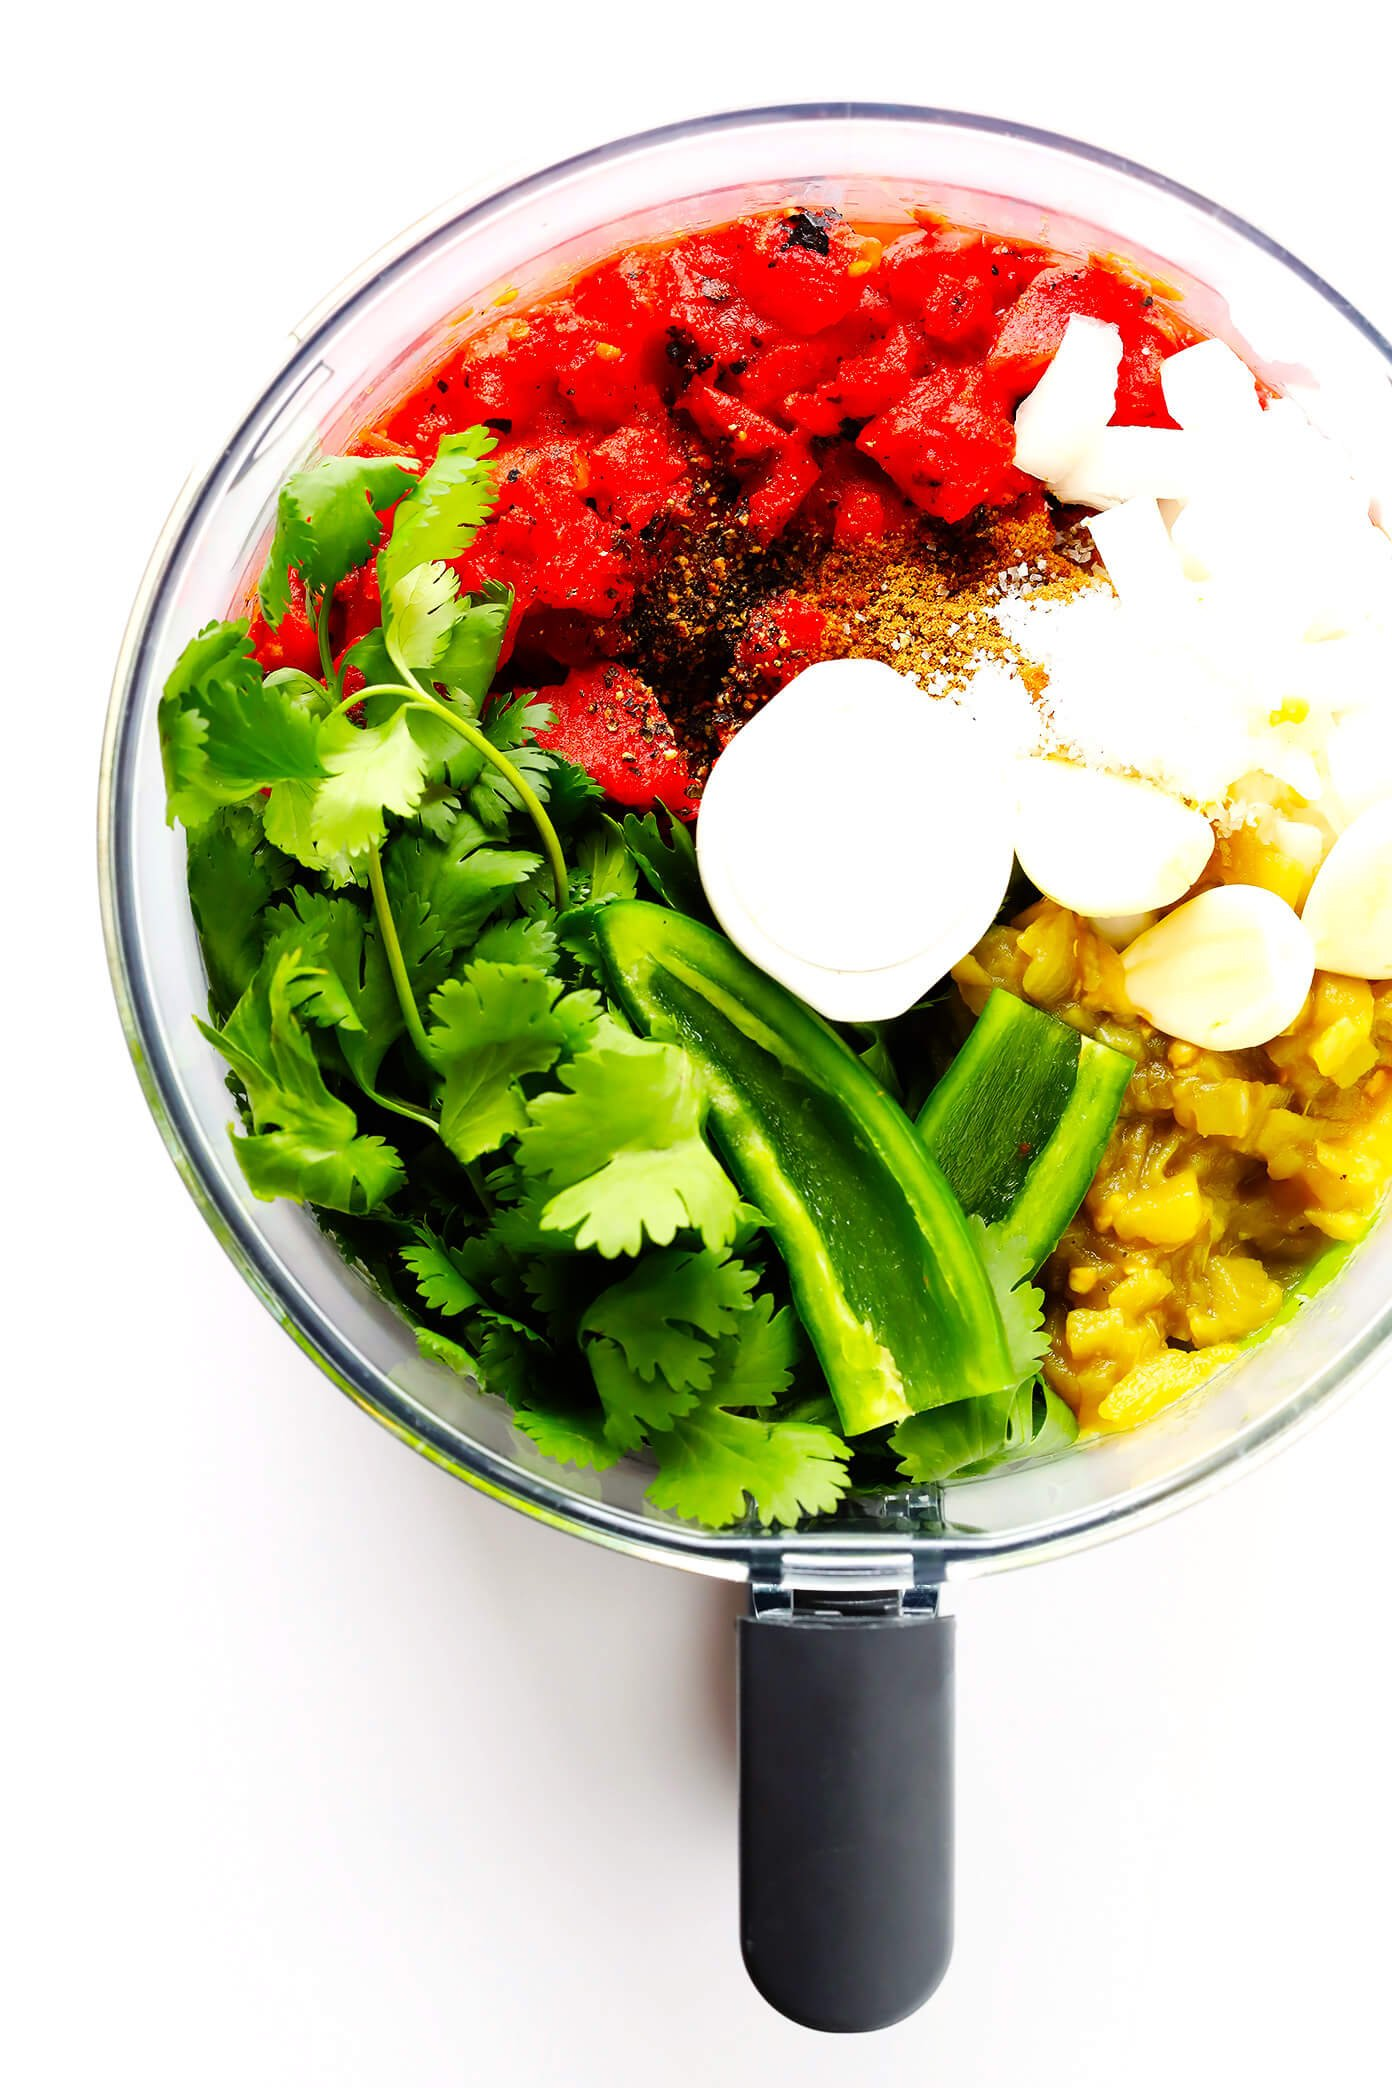 Restaurant-Style Salsa Ingredient in Food Processor